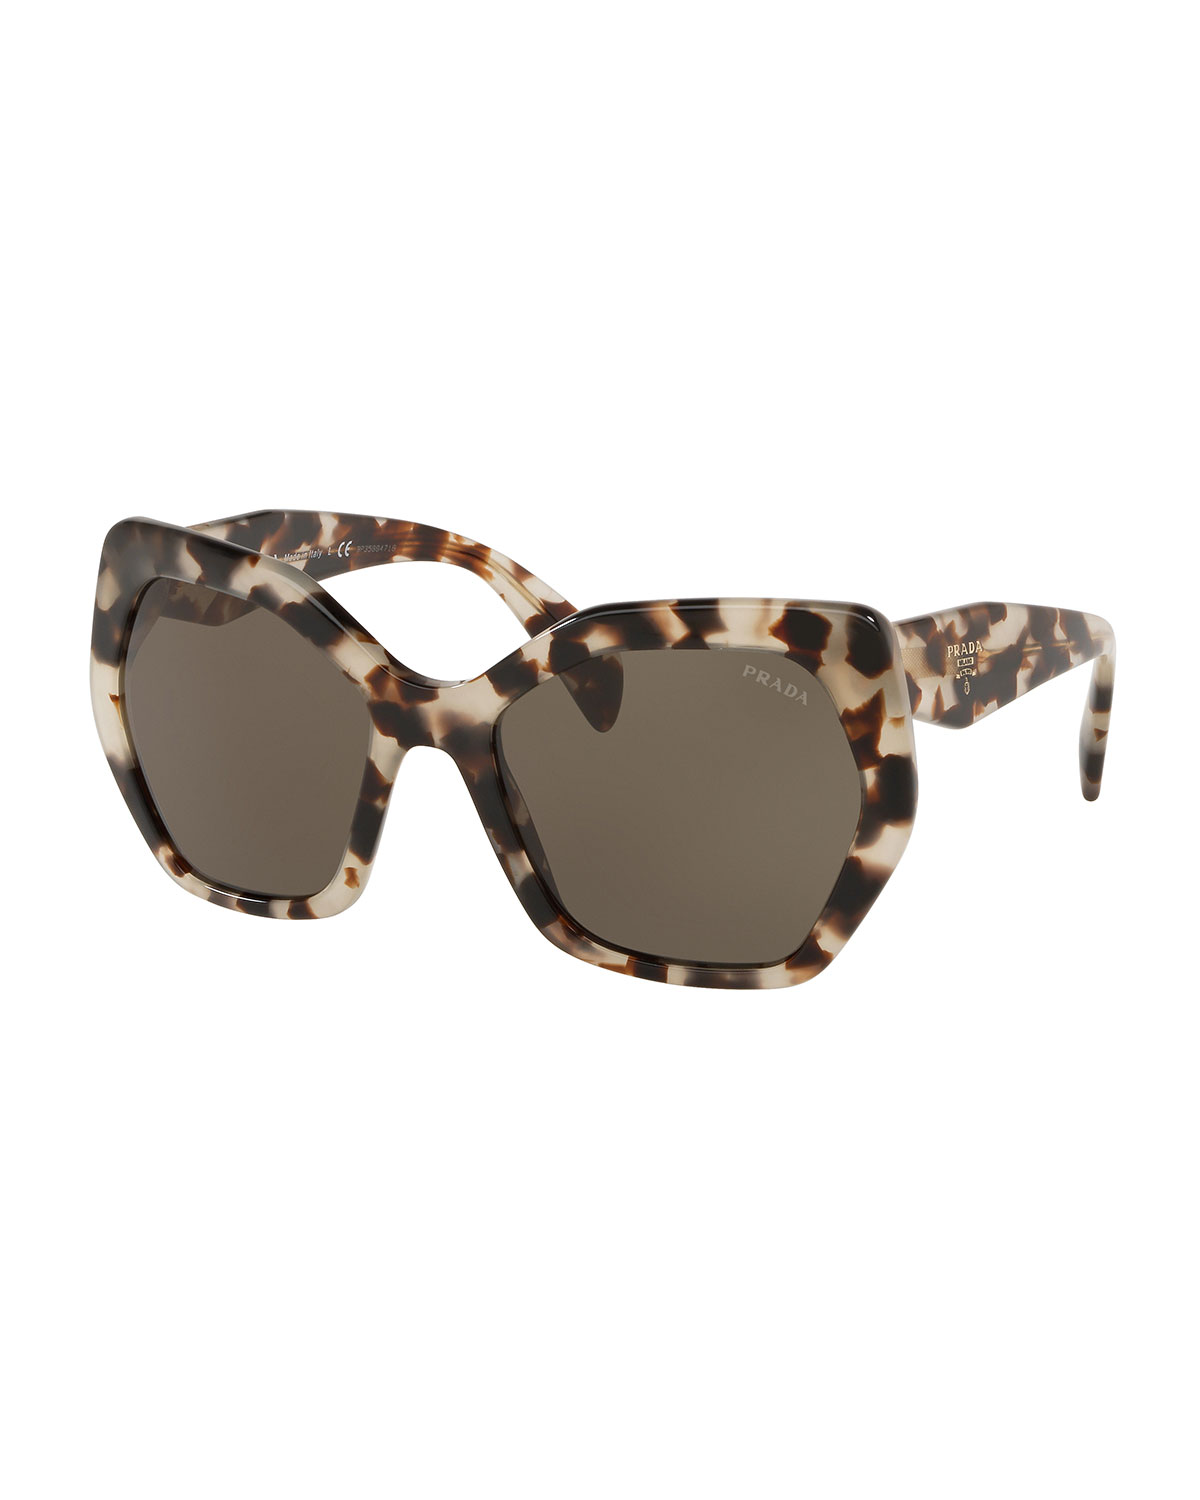 Prada Heritage Angled Butterfly Sunglasses In Spotted Brown